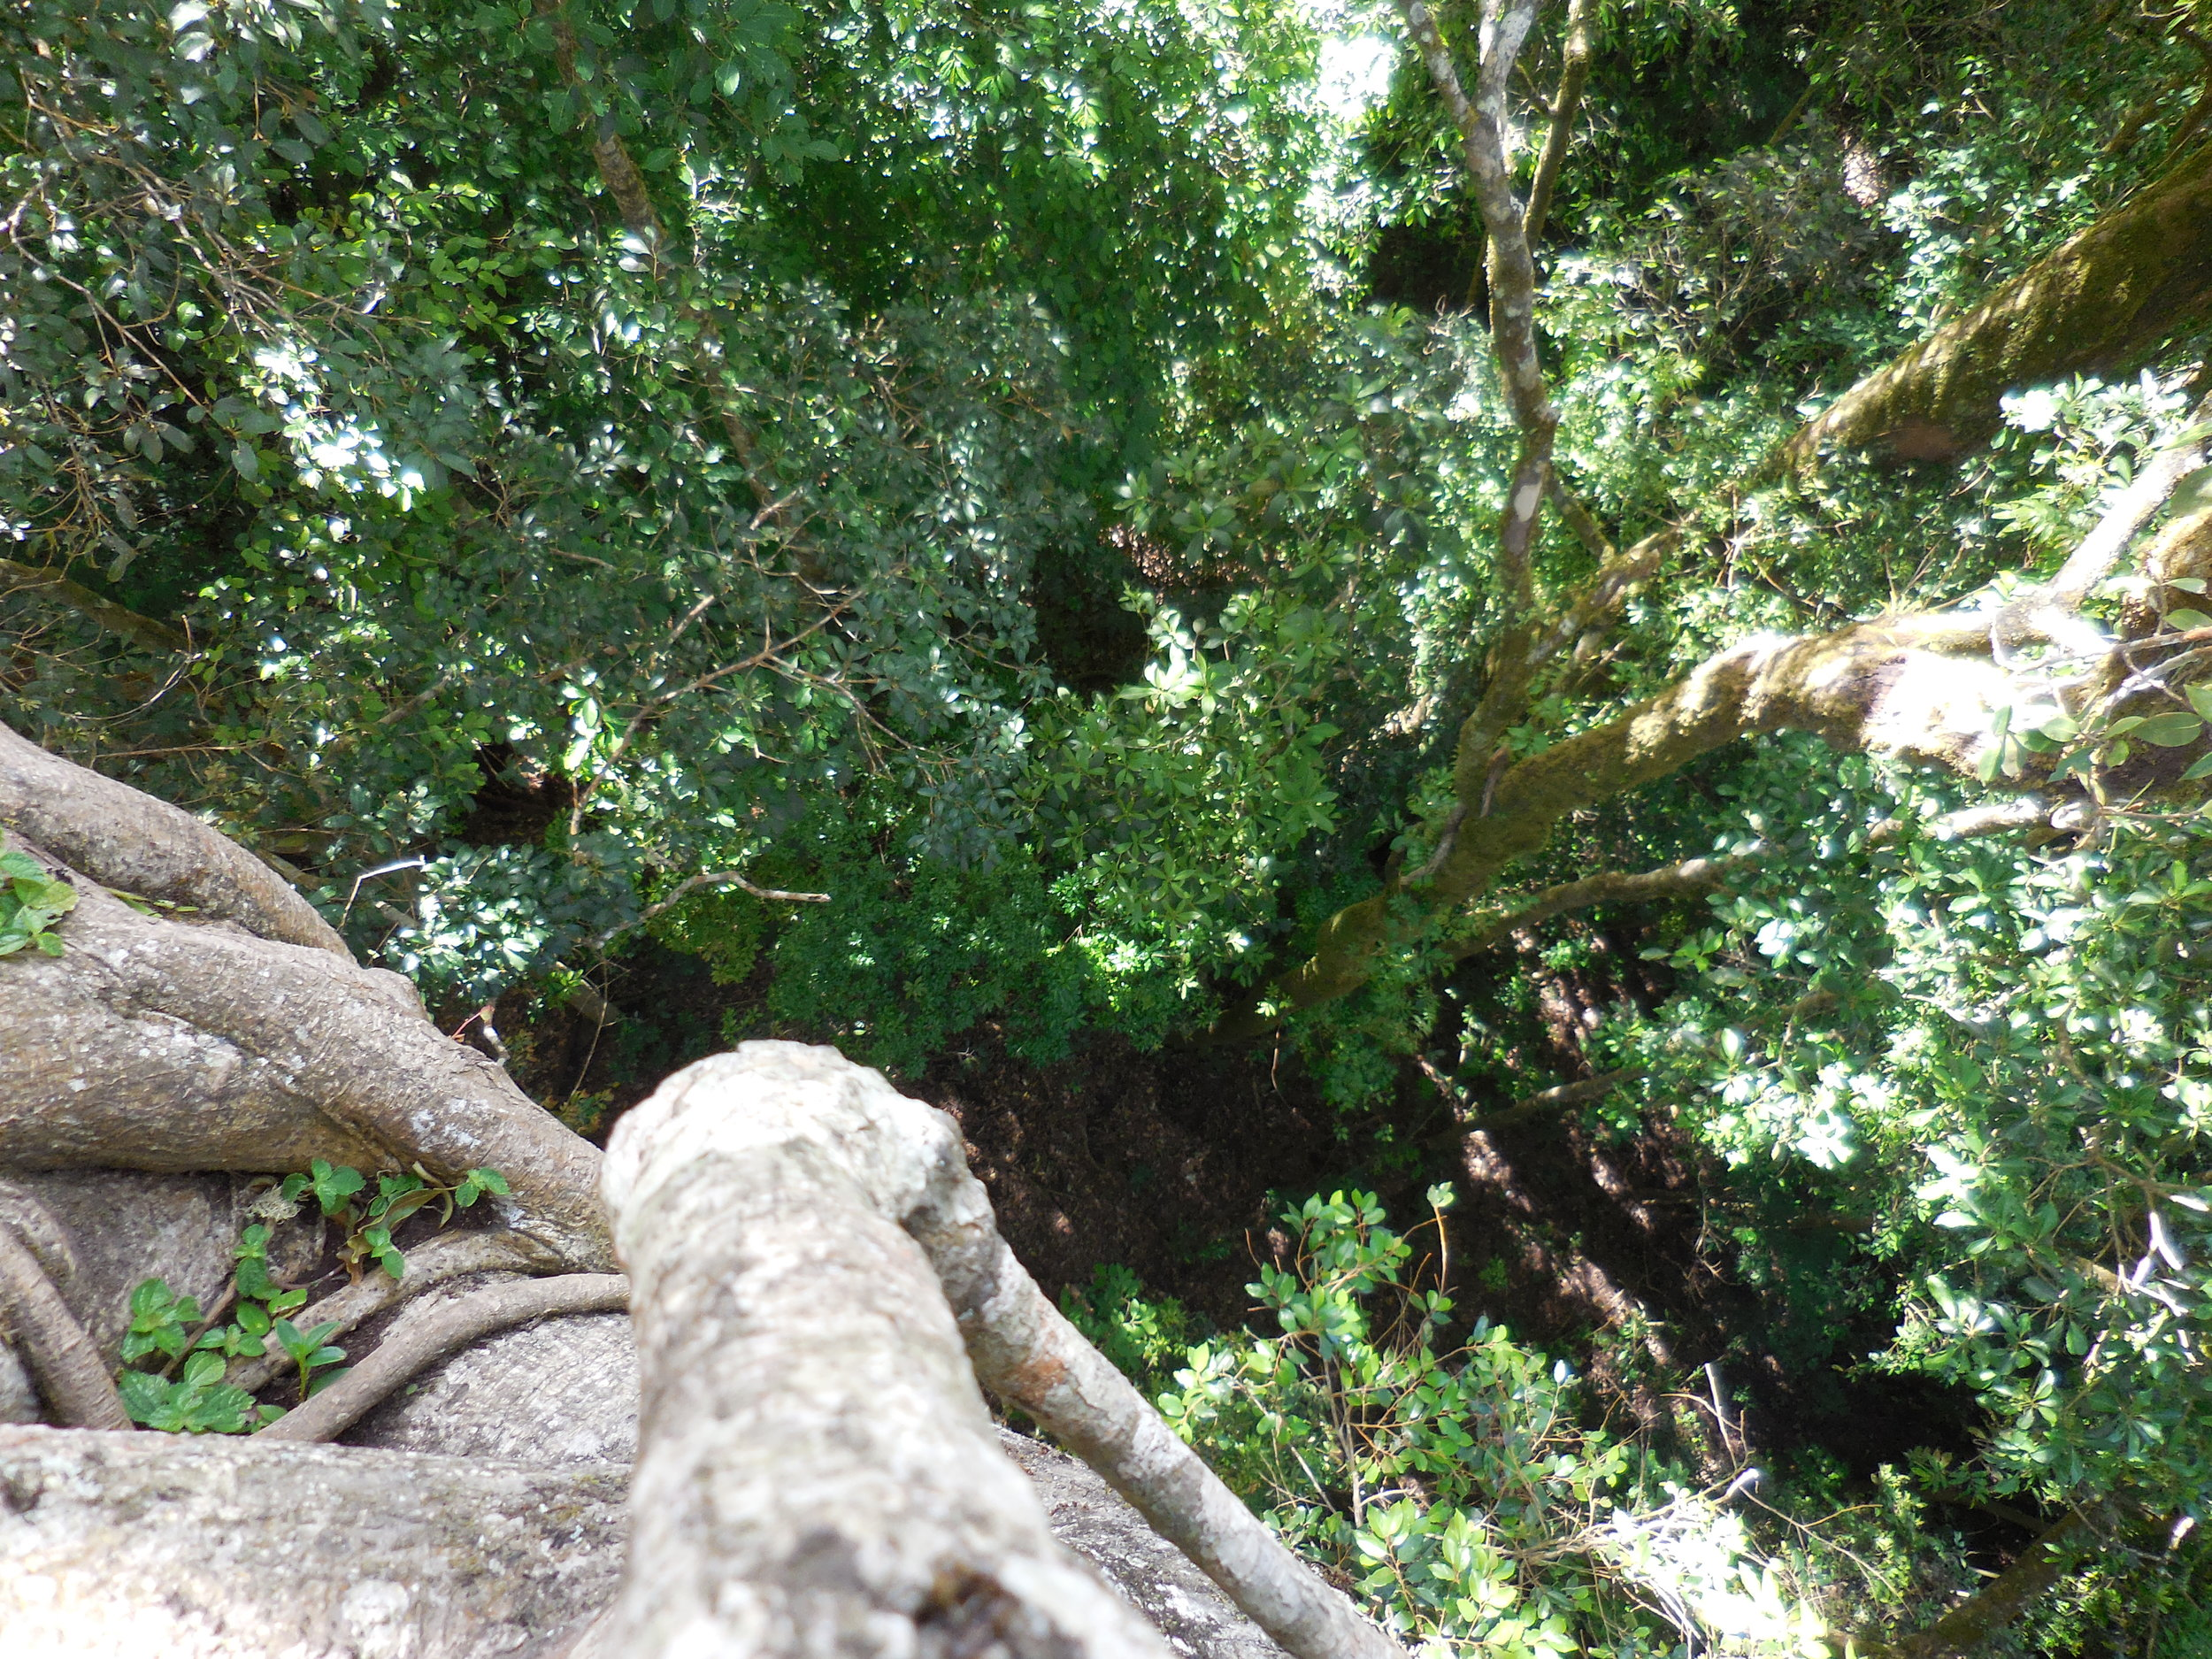 looking down the hollow tree